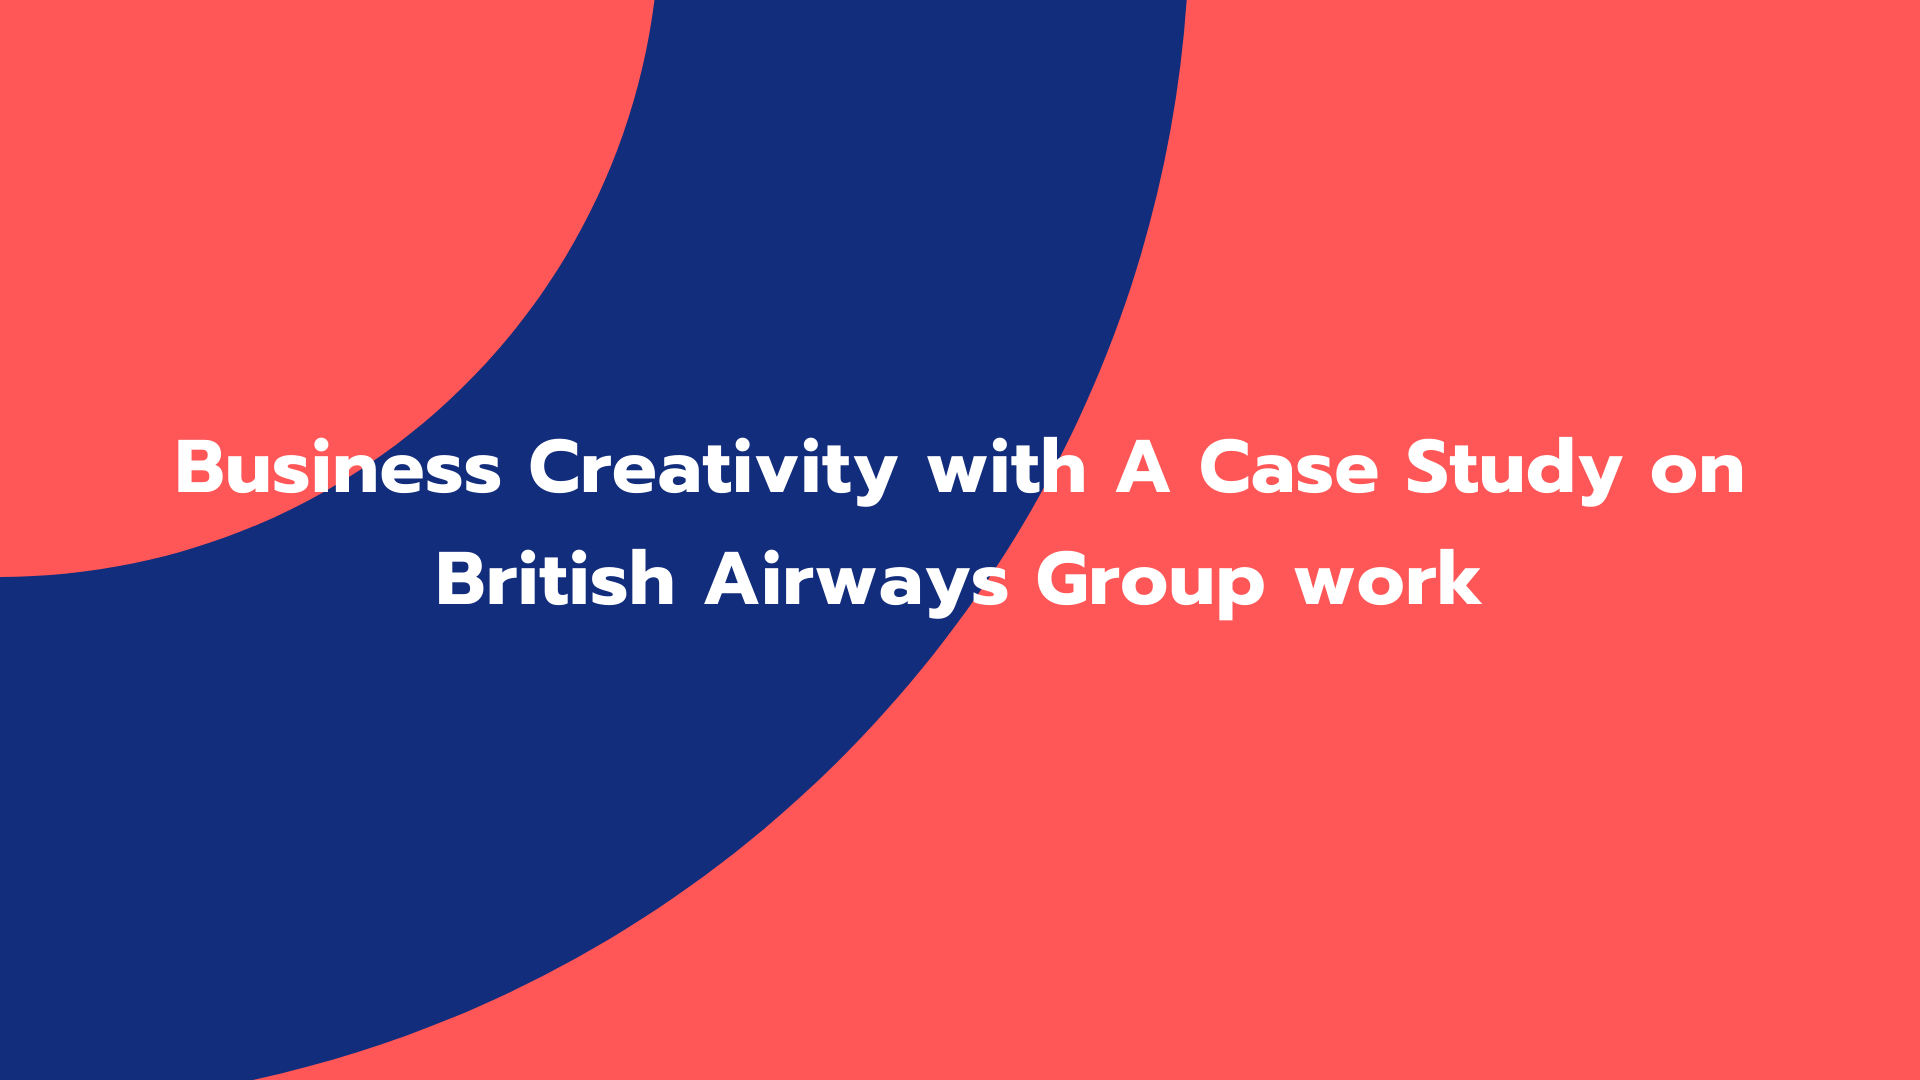 Business Creativity with A Case Study on British Airways Group work